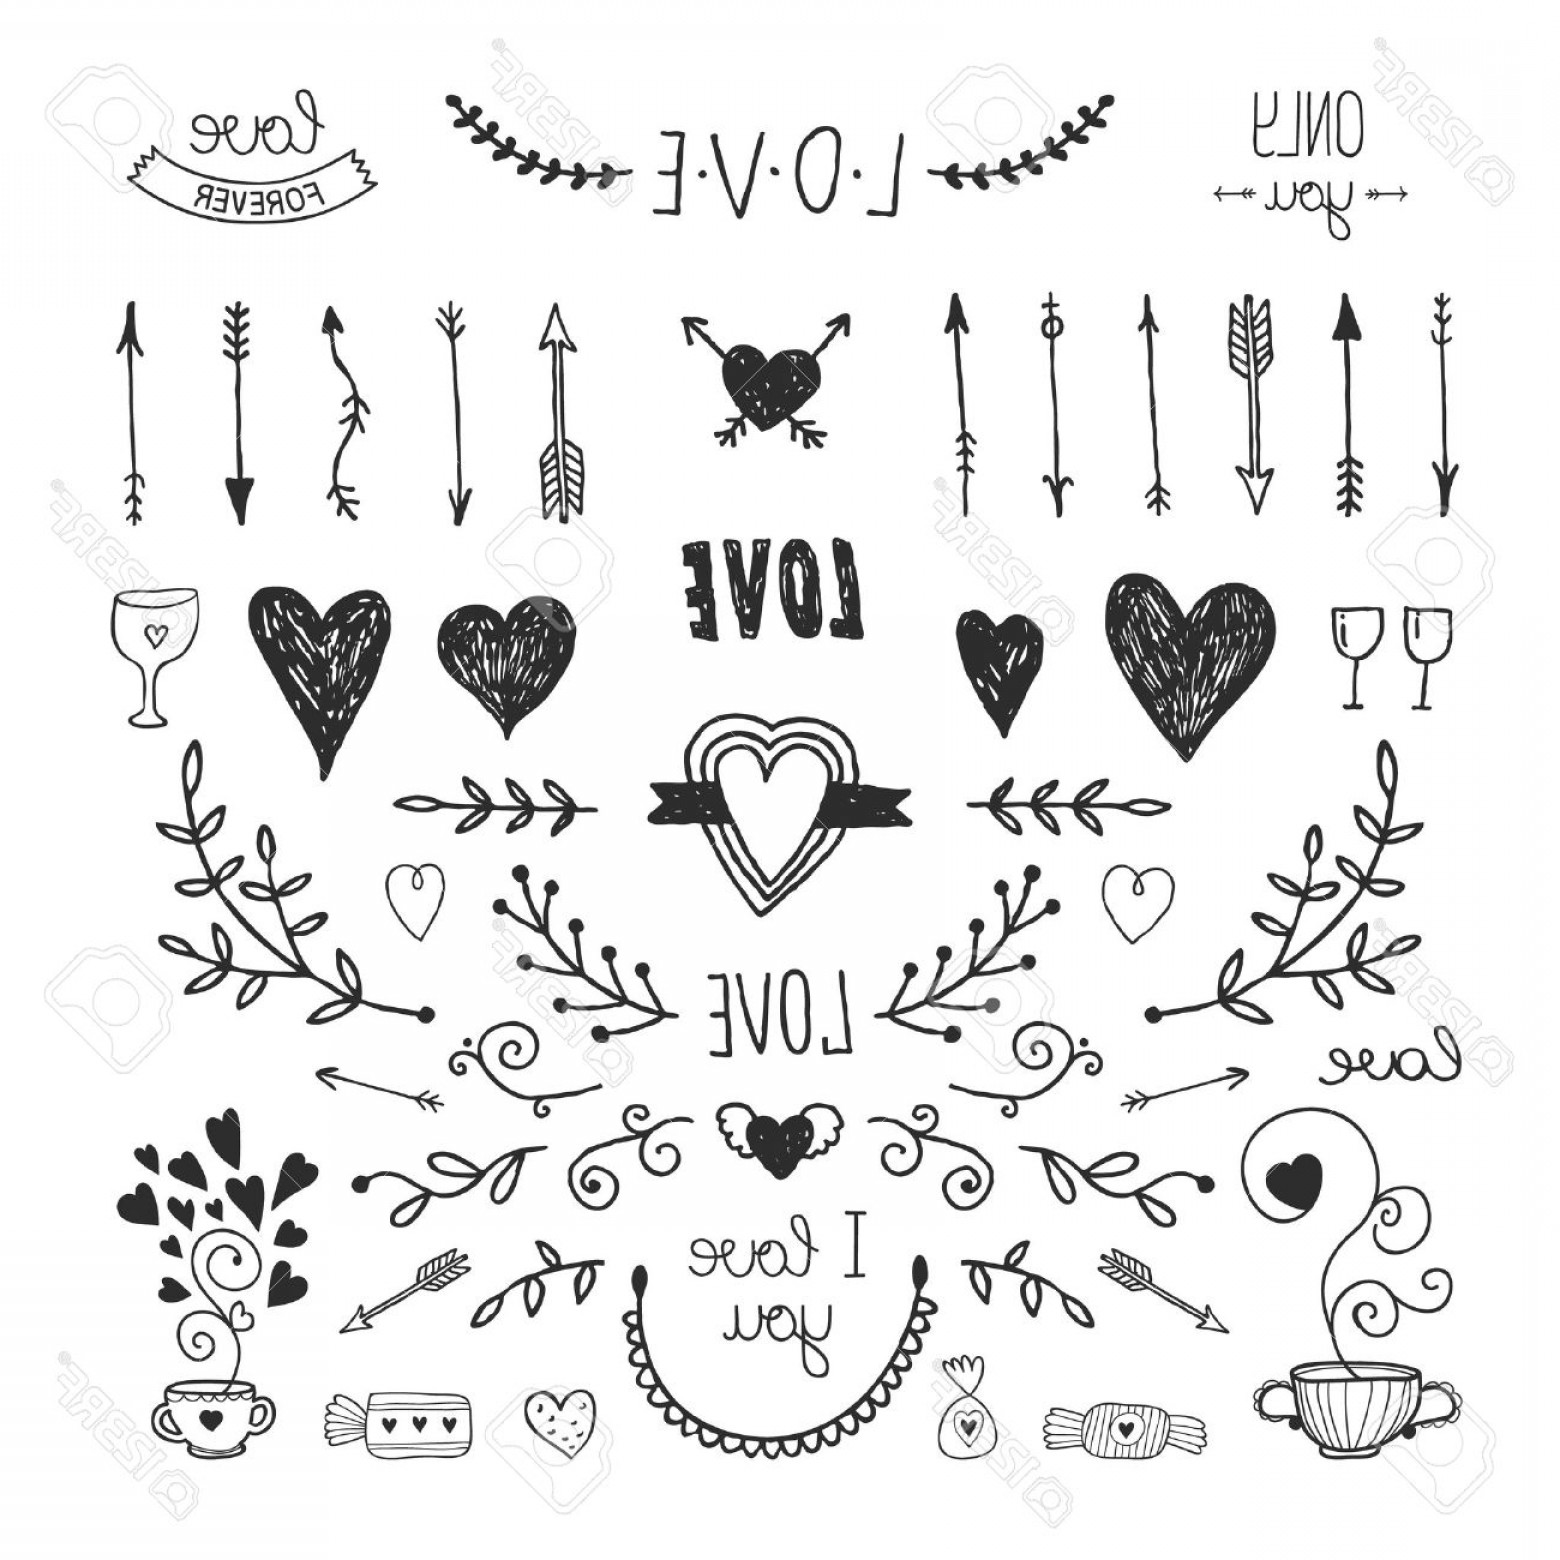 Love With Arrows Vector: Photostock Vector Love Decorative Vintage Elements Hand Drawn Collection With Arrow Heart Tatoo Flower Tea And Letteri